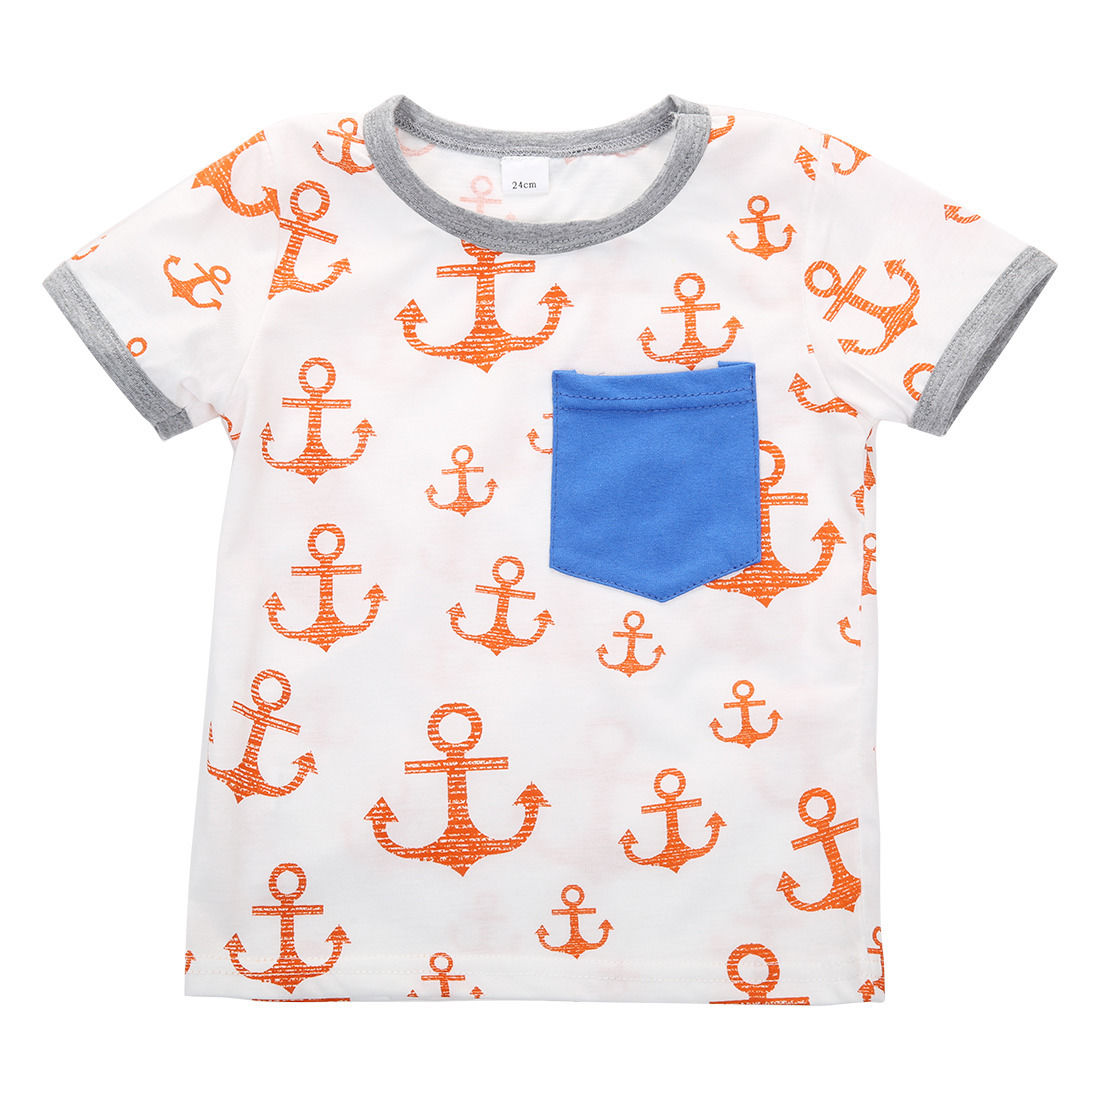 Llegada Infant Baby Summer Toddler Kids Boy Camisetas de manga corta - Ropa de ninos - foto 4